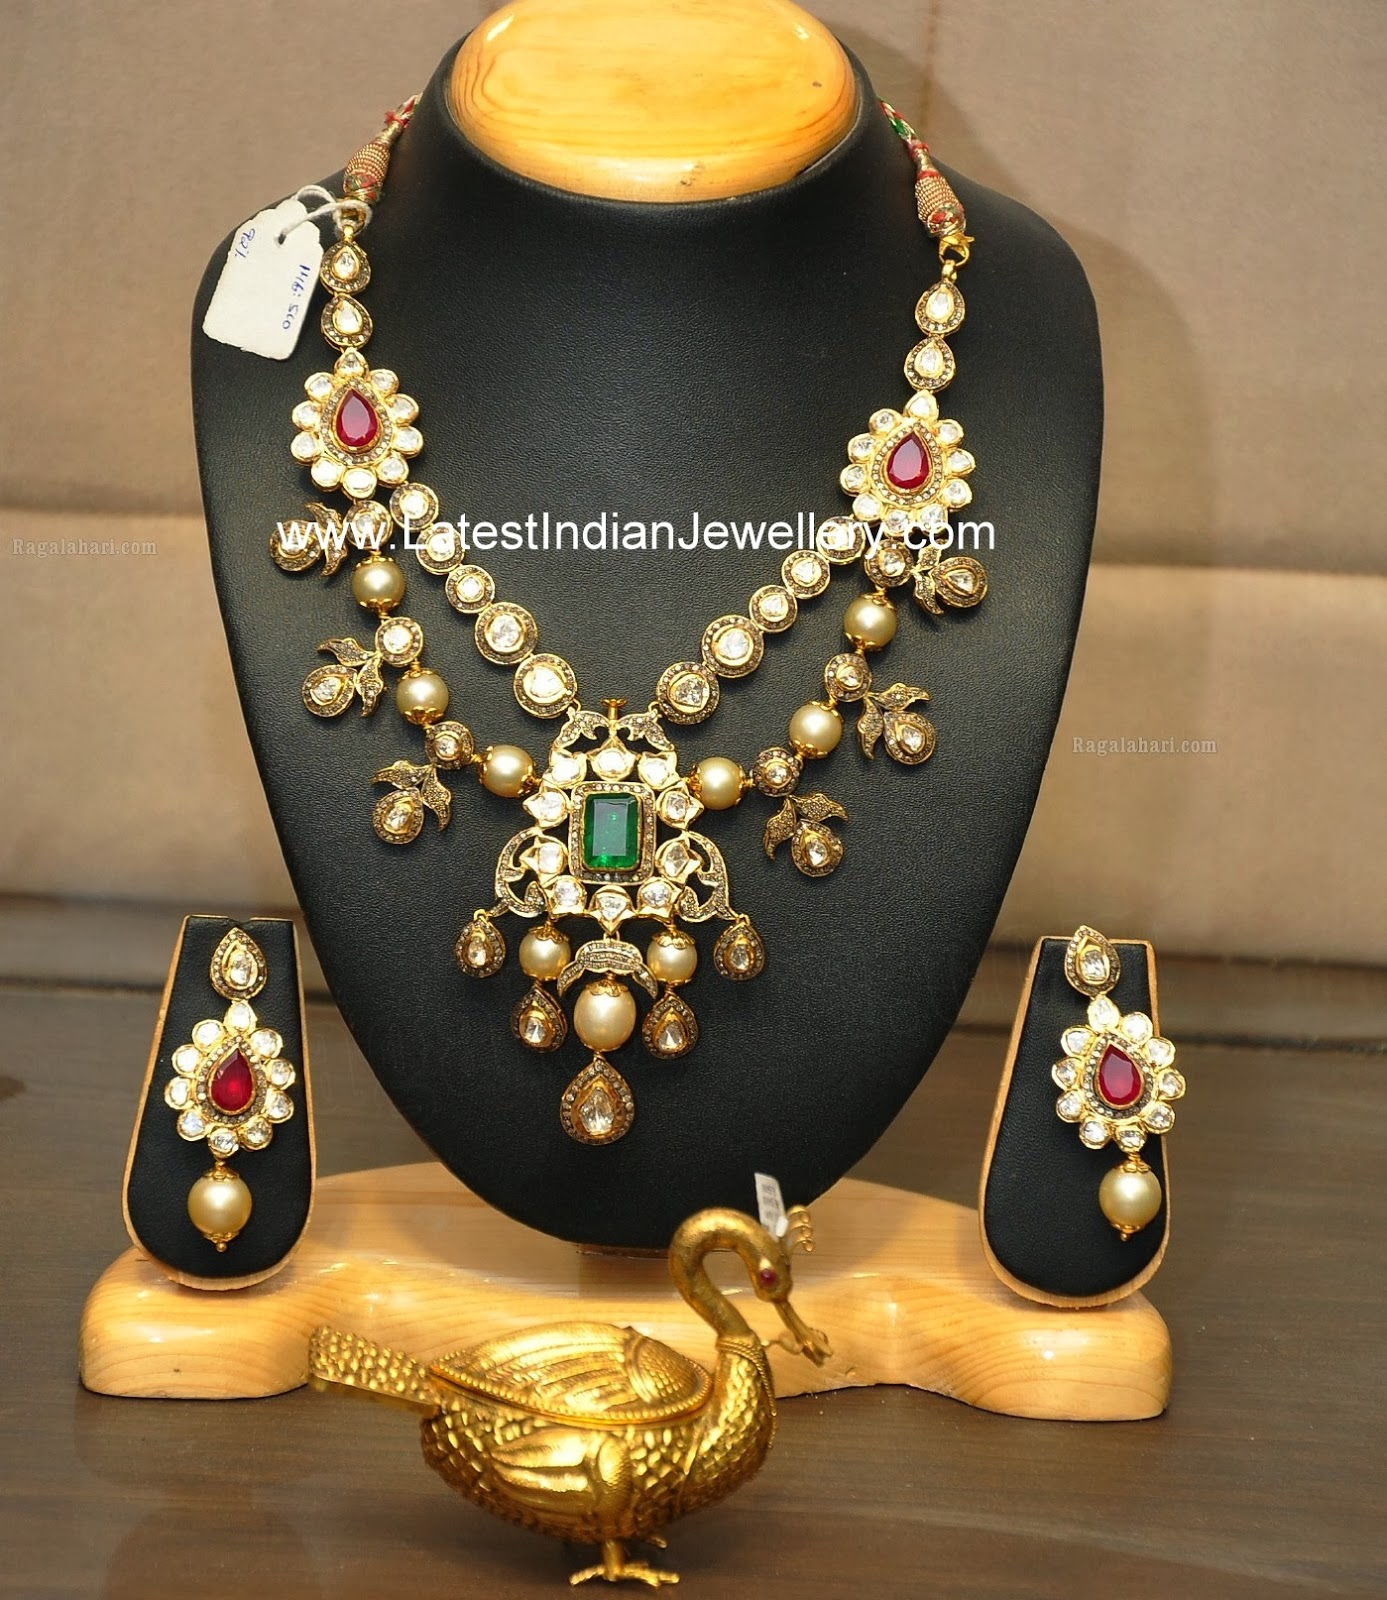 Polki Diamond Necklace with Pearls